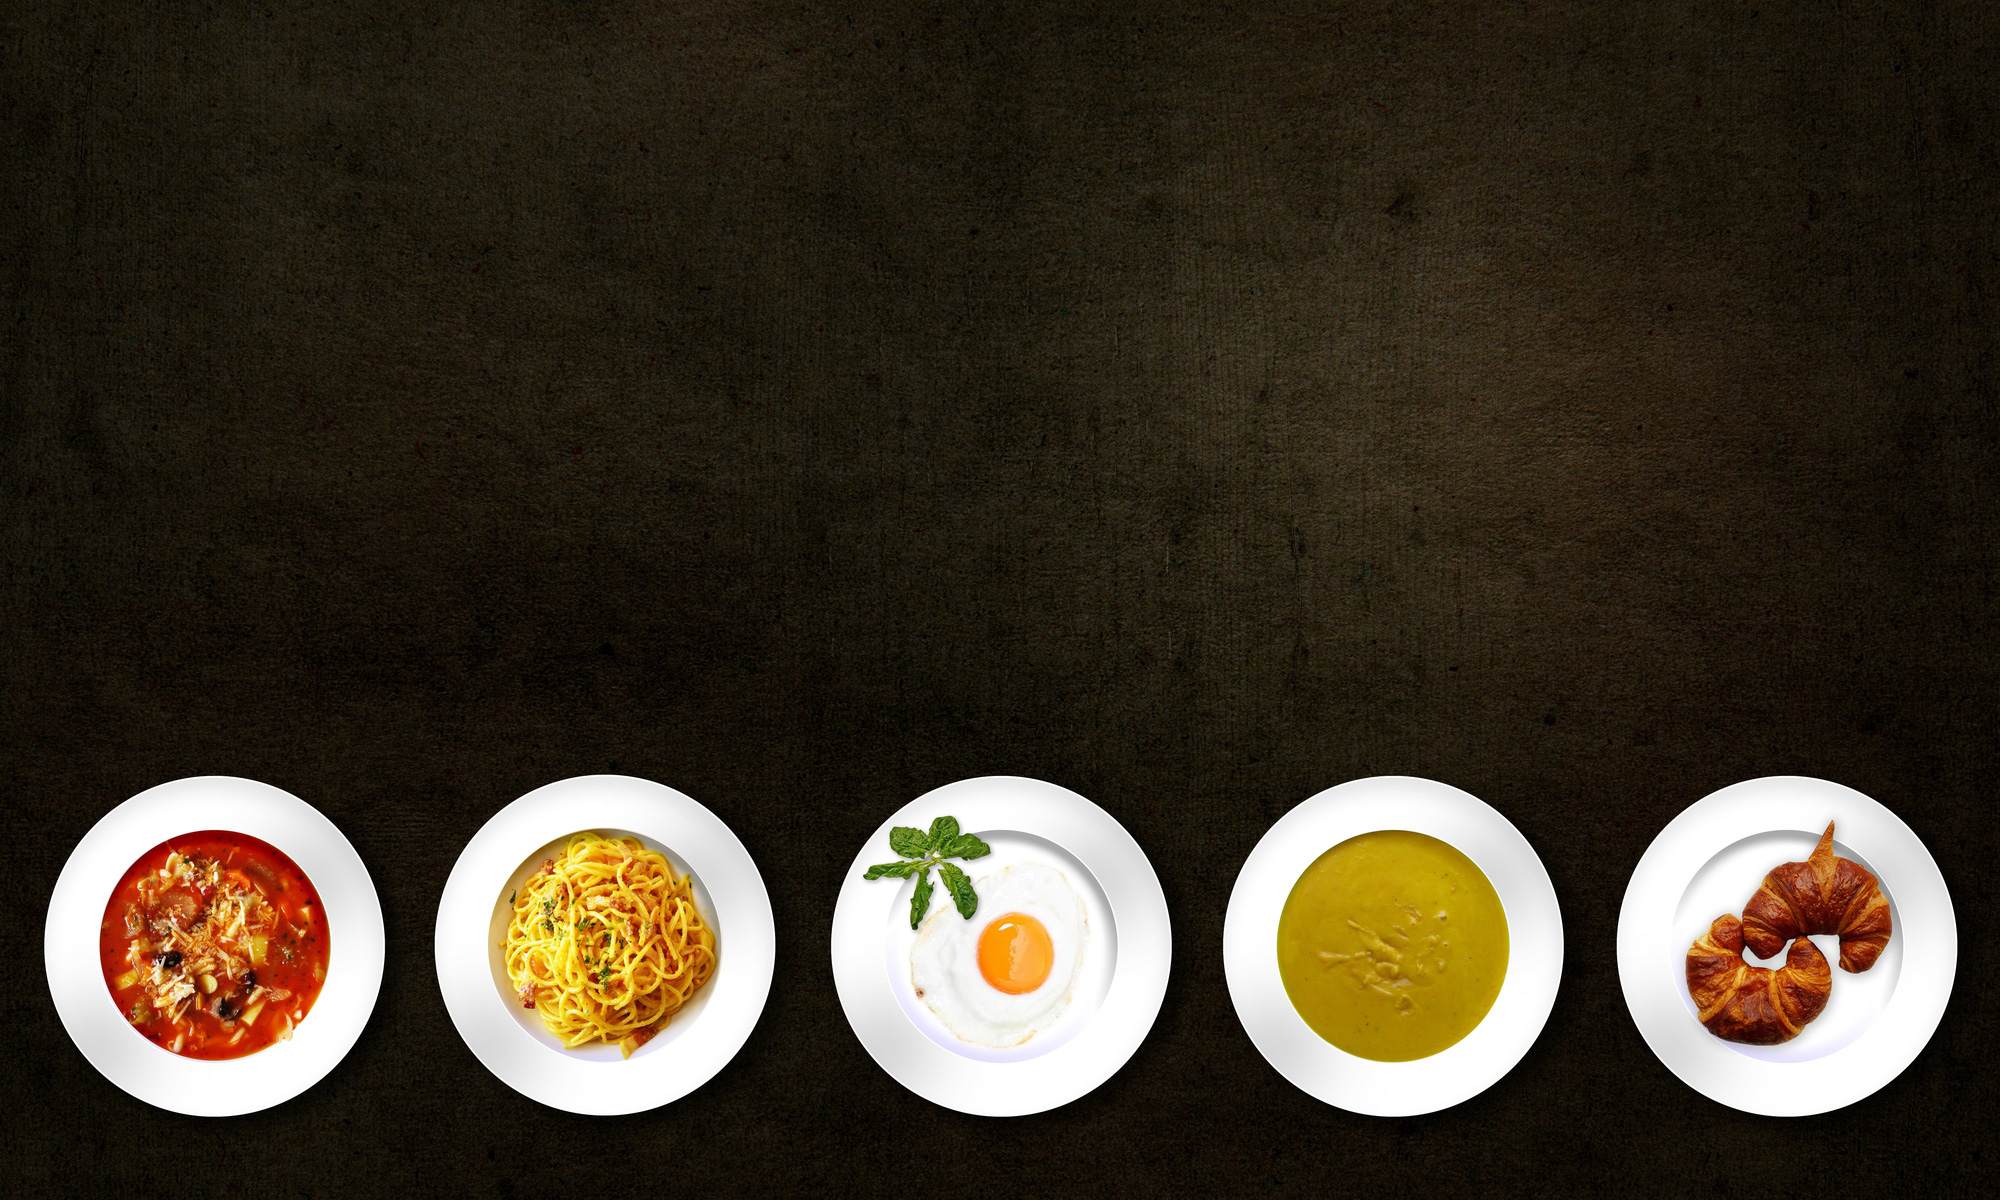 five-white-plates-with-different-kinds-of-dishes-54455